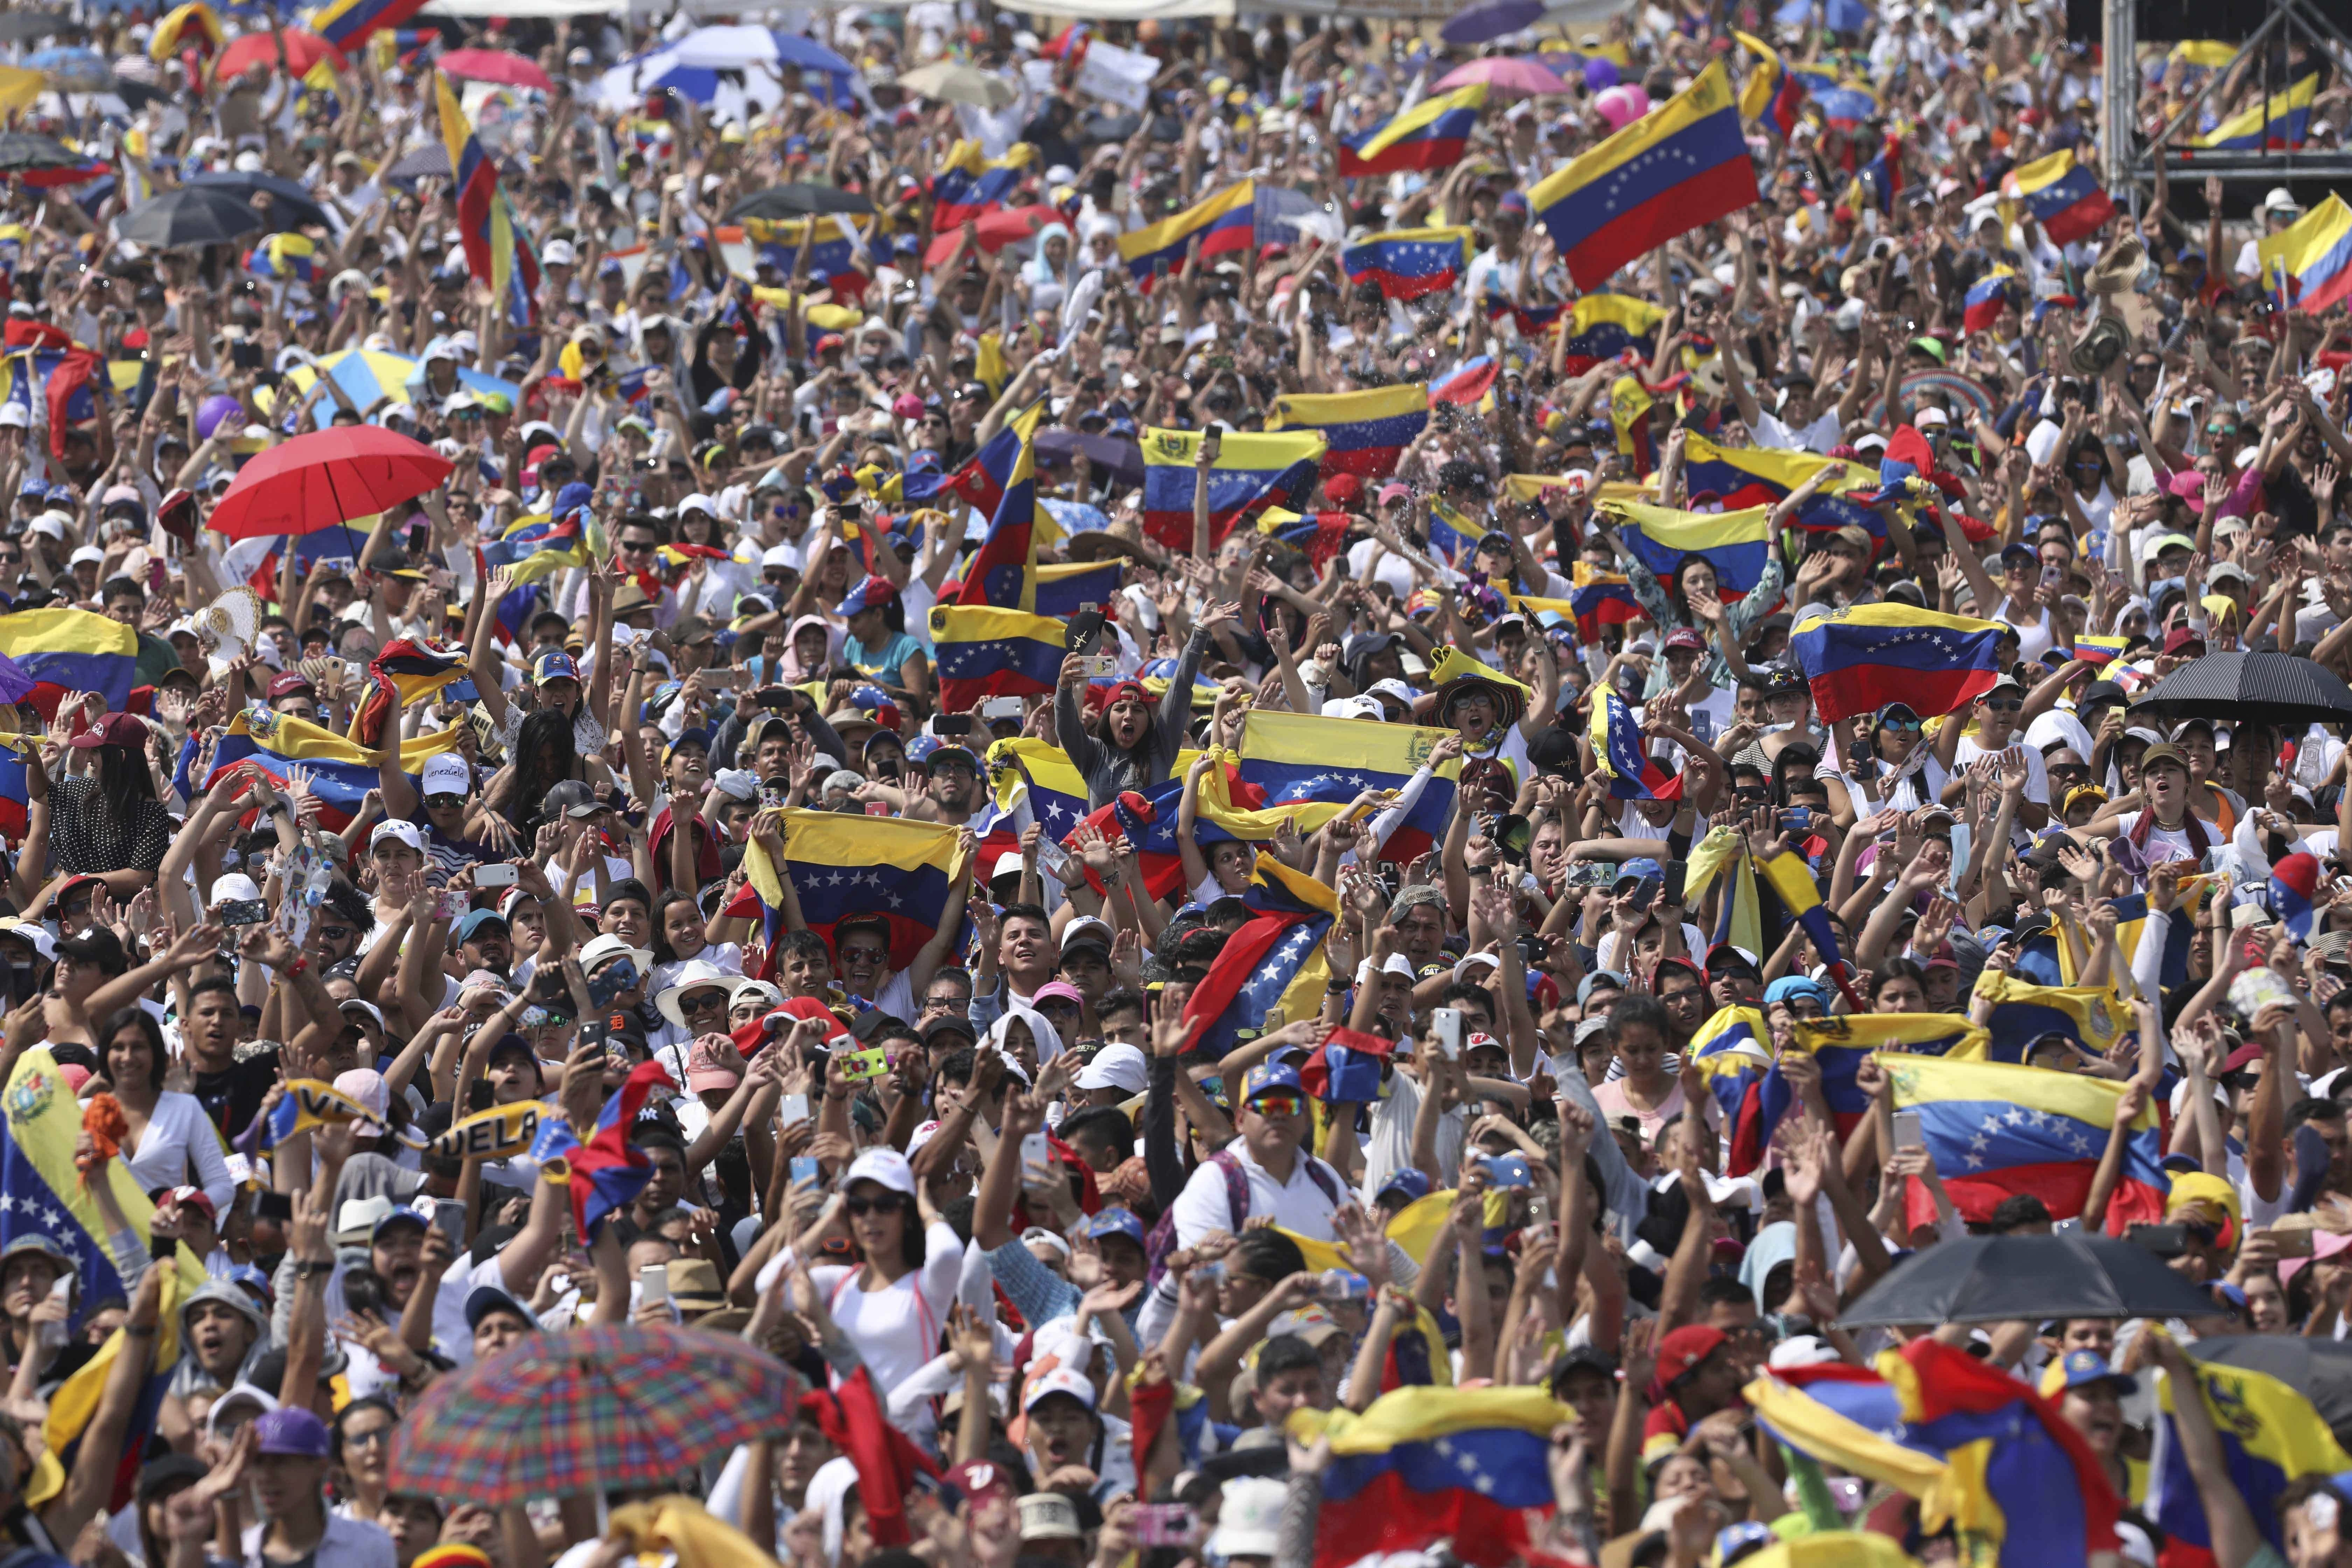 Concert goers unfurl their Venezuelan flags during the Venezuela Aid Live concert on the Colombian side of the Tienditas International Bridge near Cucuta, Colombia, on the border with Venezuela Friday, Feb. 22, 2019. Venezuela's power struggle is set to become a battle of the bands Friday when musicians demanding President Nicolas Maduro allow in humanitarian aid and those supporting his refusal sing in rival concerts being held at both sides of a border bridge where tons of donated food and medicine are stored. (AP Photo/Fernando Vergara)